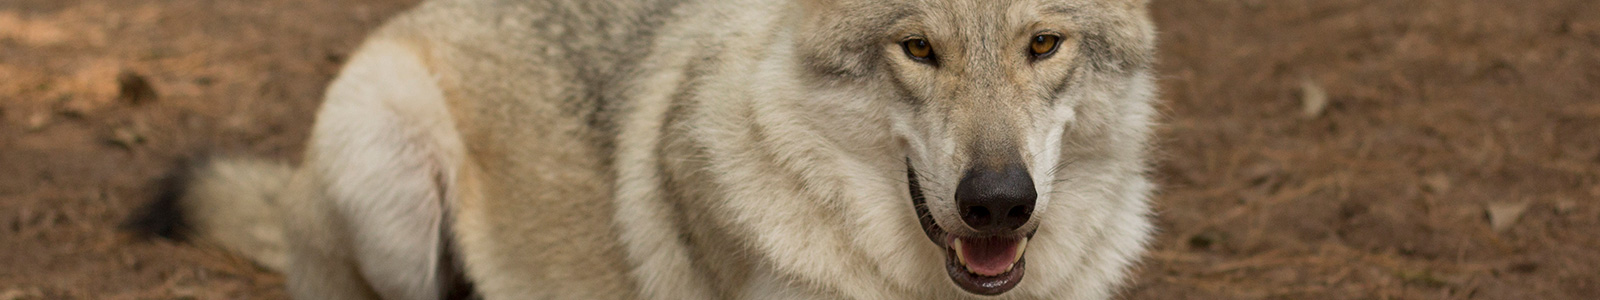 Texas Wolfdog Project Face masking, Coloration, and general appearance Header Image